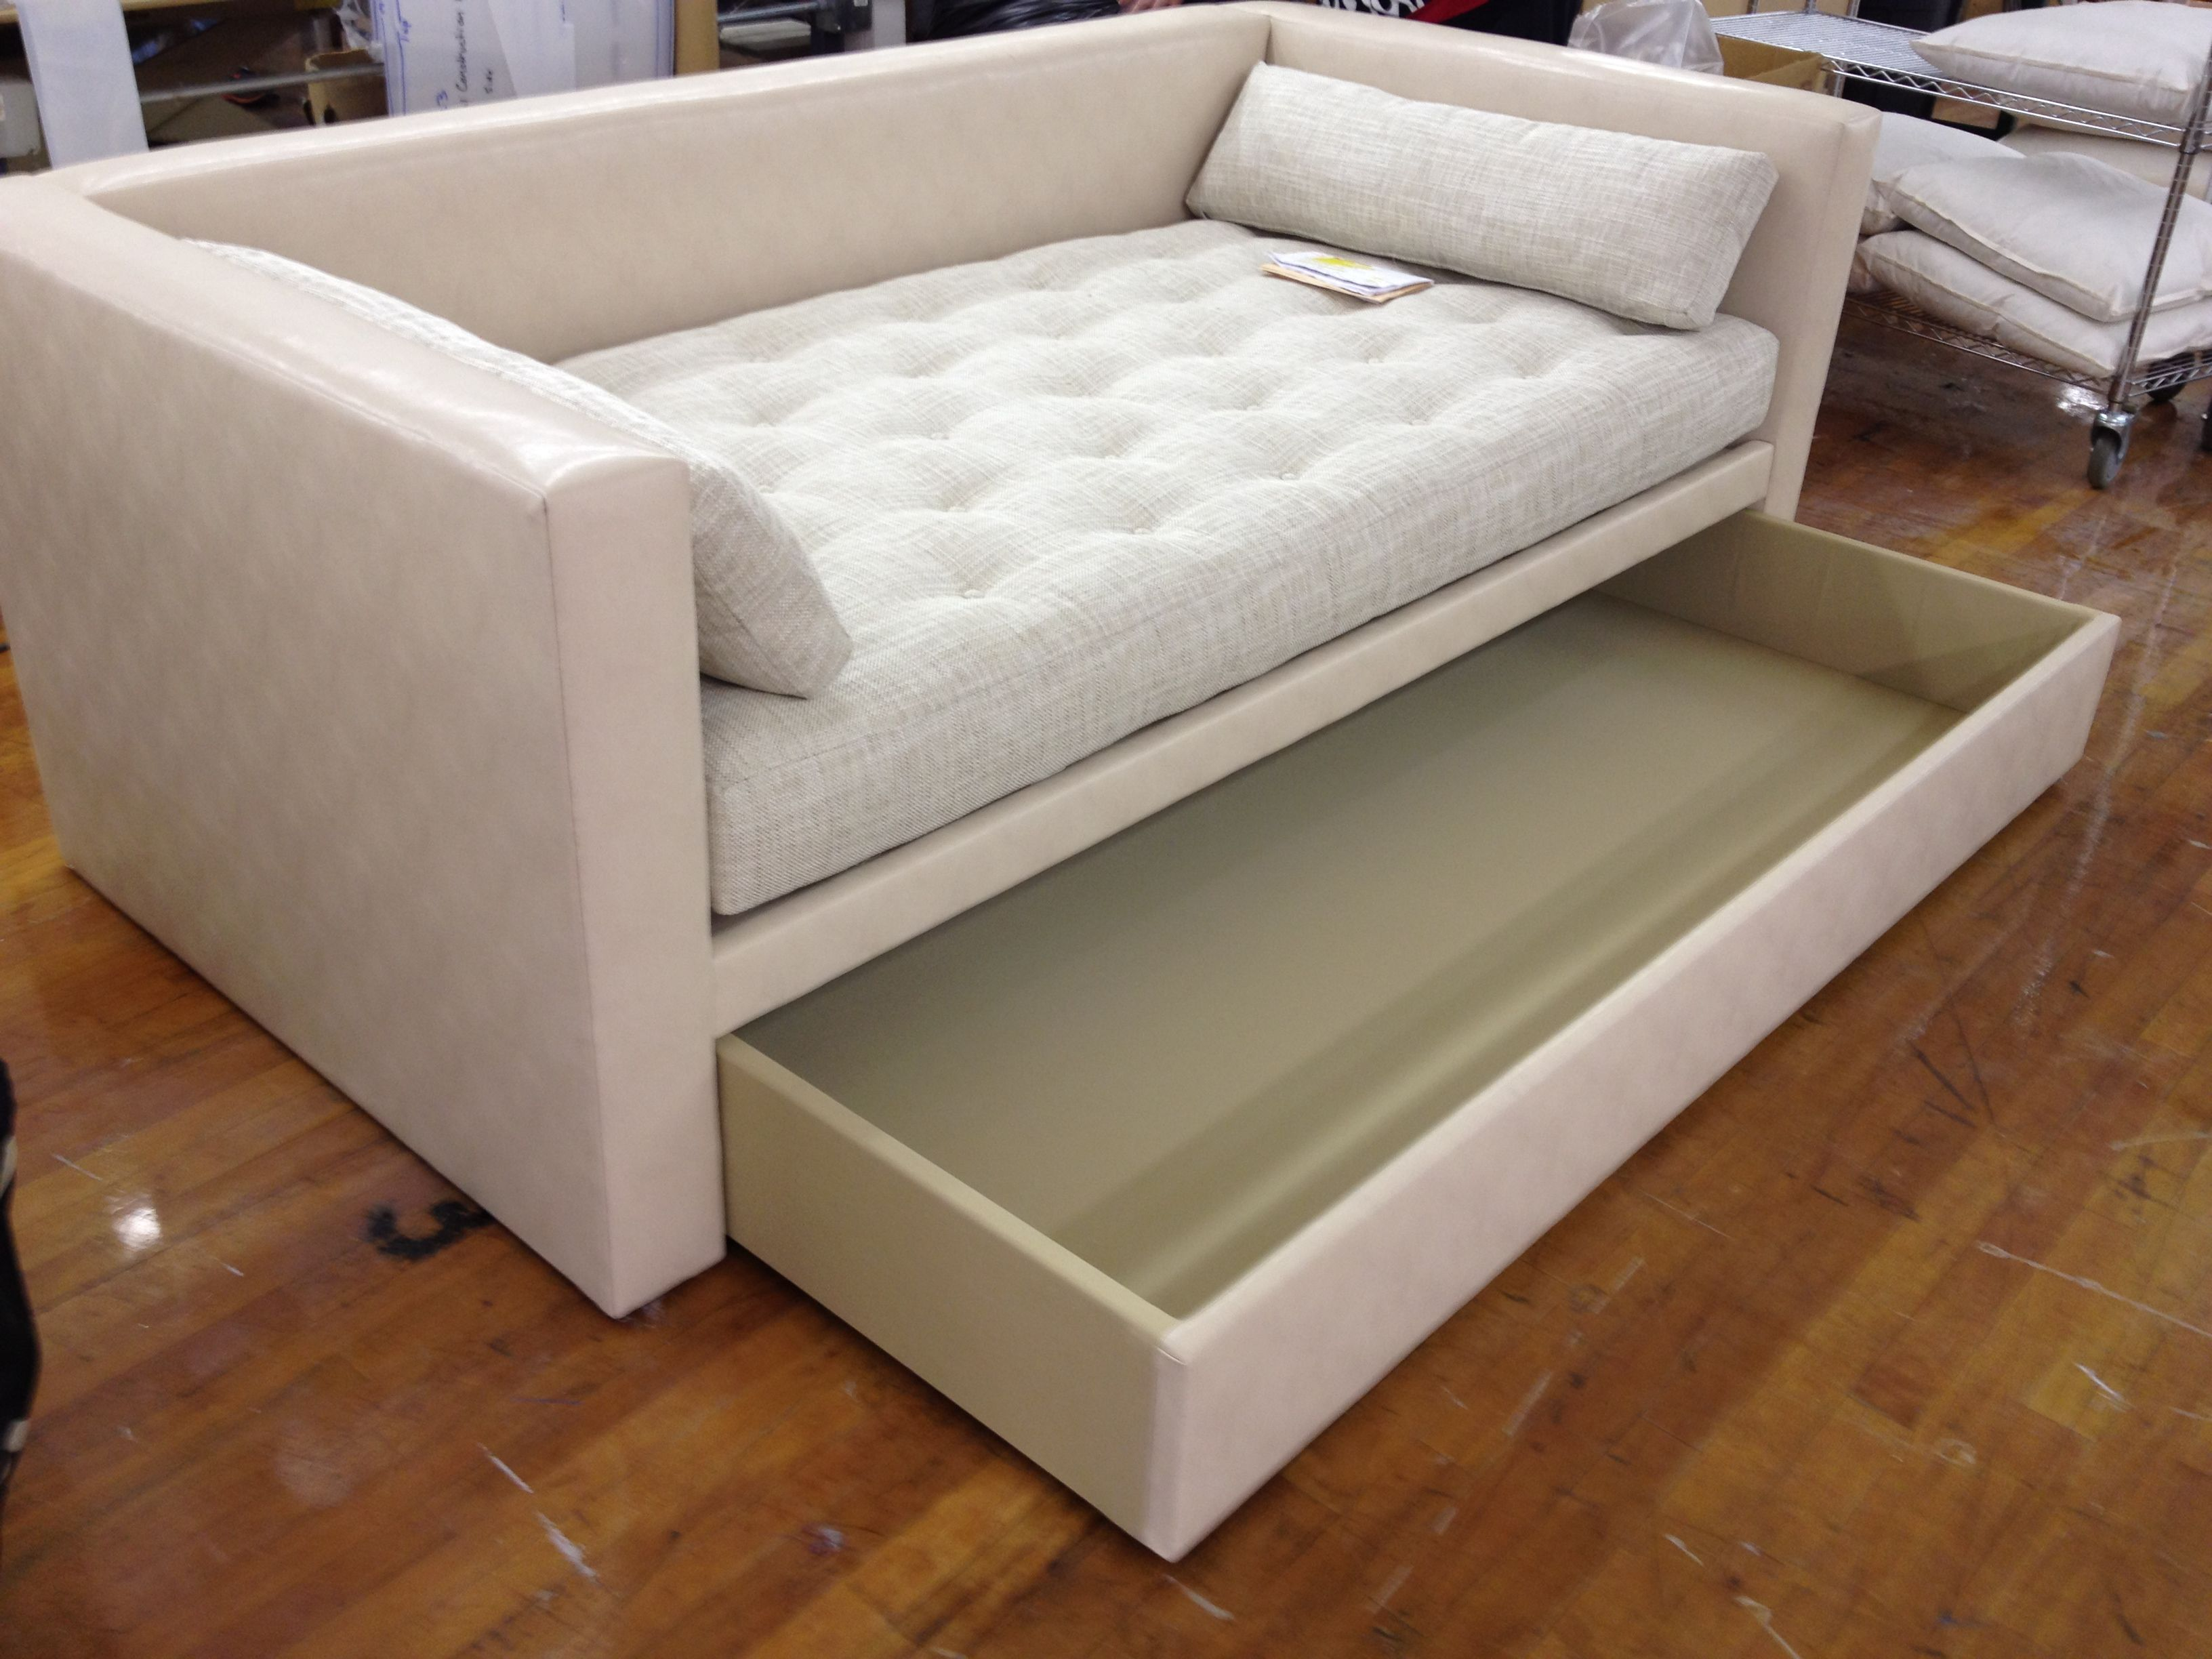 Trundle bed sofa porter m2m divan into a custom sized for What s a divan bed